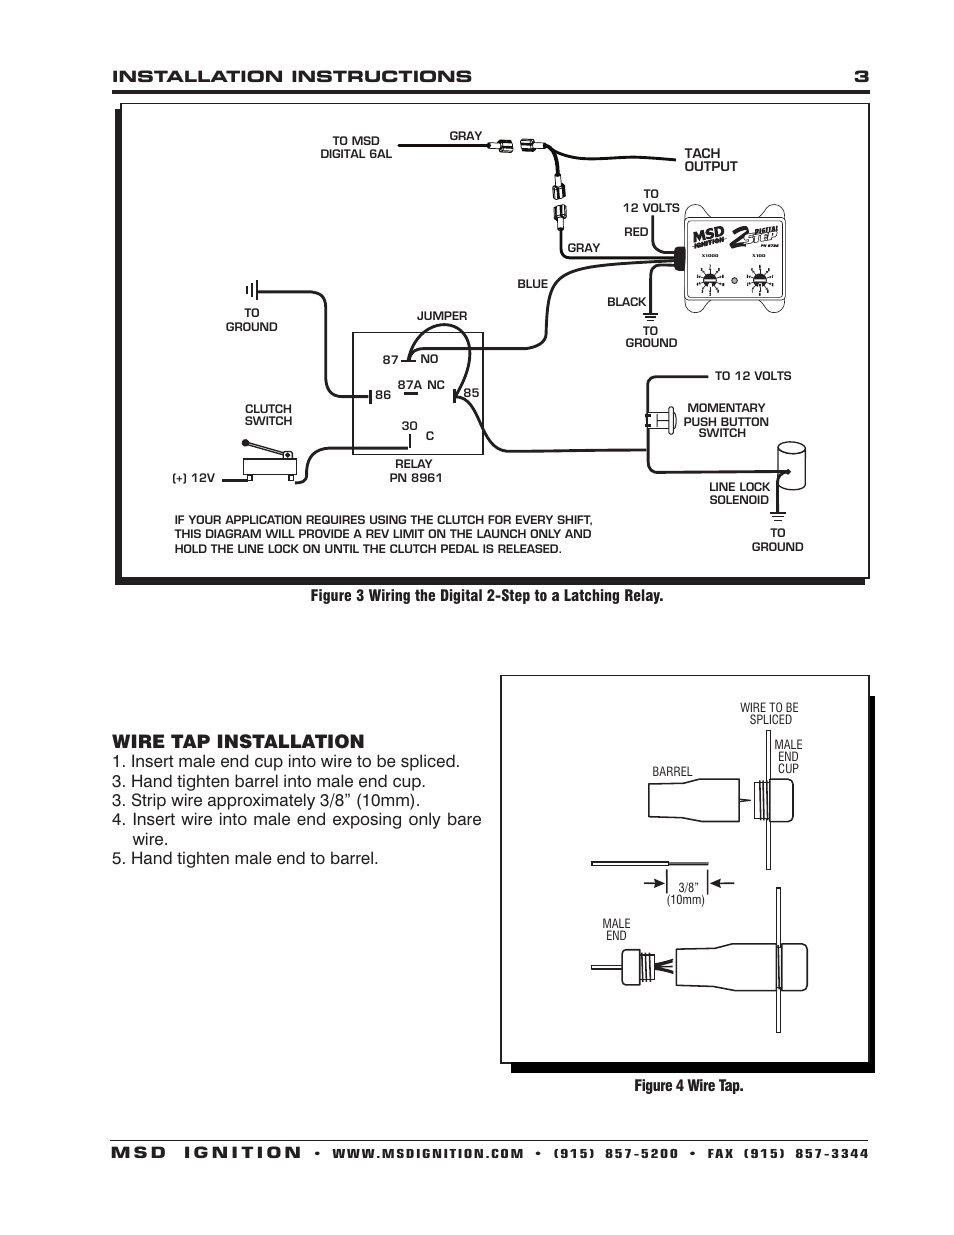 msd 8732 2 step rev control for digital 6al installation page3?resize\\\\\\\\\\\\\\\\\\\\\\\\\\\\\\\\\\\\\\\\\\\\\\\\\\\\\\\\\\\\\\\\\\\\\\\\\\\\\\\\\\\\\\\\\\\\\\\\\\\\\\\\\\\\\\\\\\\\\\\\\\\\\\\\\\\\\\\\\\\\\\\\\\\\\\\\\\\\\\\\\\\\\\\\\\\\\\\\\\\\\\\\\\\\\\\\\\\\\\\\\\\\\\\\\\\\\\\\\\\\\\\\\\\\\\\\\\\\\\\\\\\\\\\\\\\\\\\\\\\\\\\\\\\\\\\\\\\\\\\\\\\\\\\\\\\\\\\\\\\\\\\\\\\\\\\\\\\\\\\\\\\\\\\\\\\\\\\\\\\\\\\\\\\\\\\\\\\\\\\\\\\\\\\\\\\\\\\\\\\\\\\\\\\\\\\\\\\\\\\\\\\\\\\\\\\\\\\\\\\\\\\\\\\\\\\\\\\\\\\\\\\\\\\\\\\\\\\\\\\\\\\\\\\\\\\\\\\\\\\\\\\\\\\\\\\\\\\\\\\\\\\\\\\\\\\=665%2C861 mazda b2200 sunpro tach wiring on mazda download wirning diagrams  at edmiracle.co